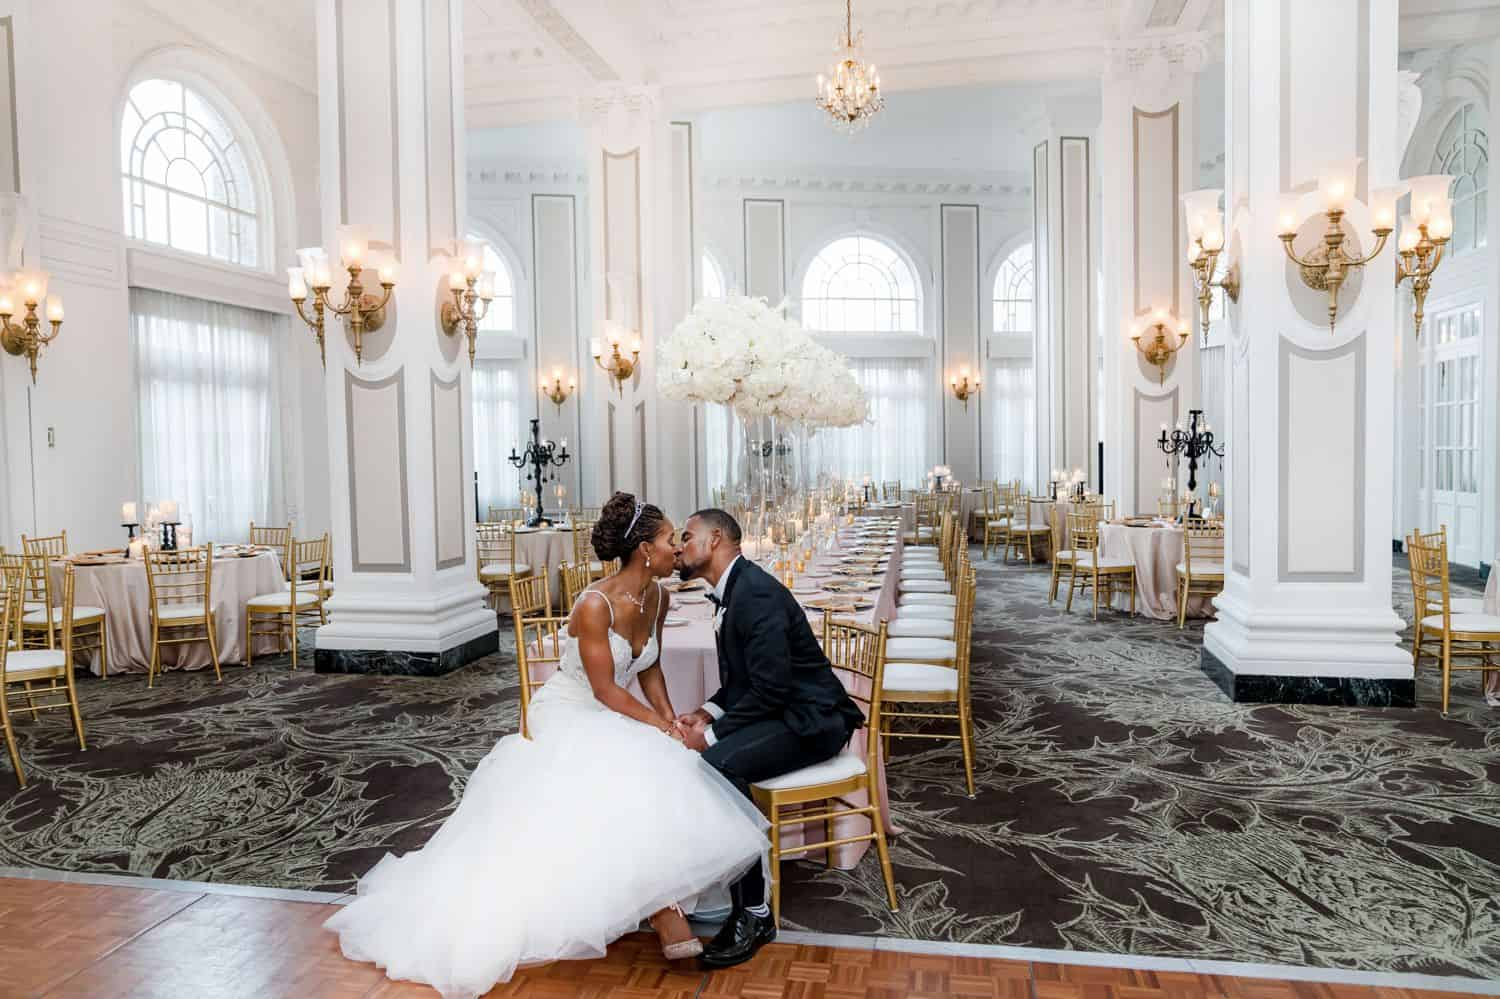 A bride in a white wedding gown kissed a groom in a black tuxedo. Both are seated in the front row of a ballroom full of chandeliers.